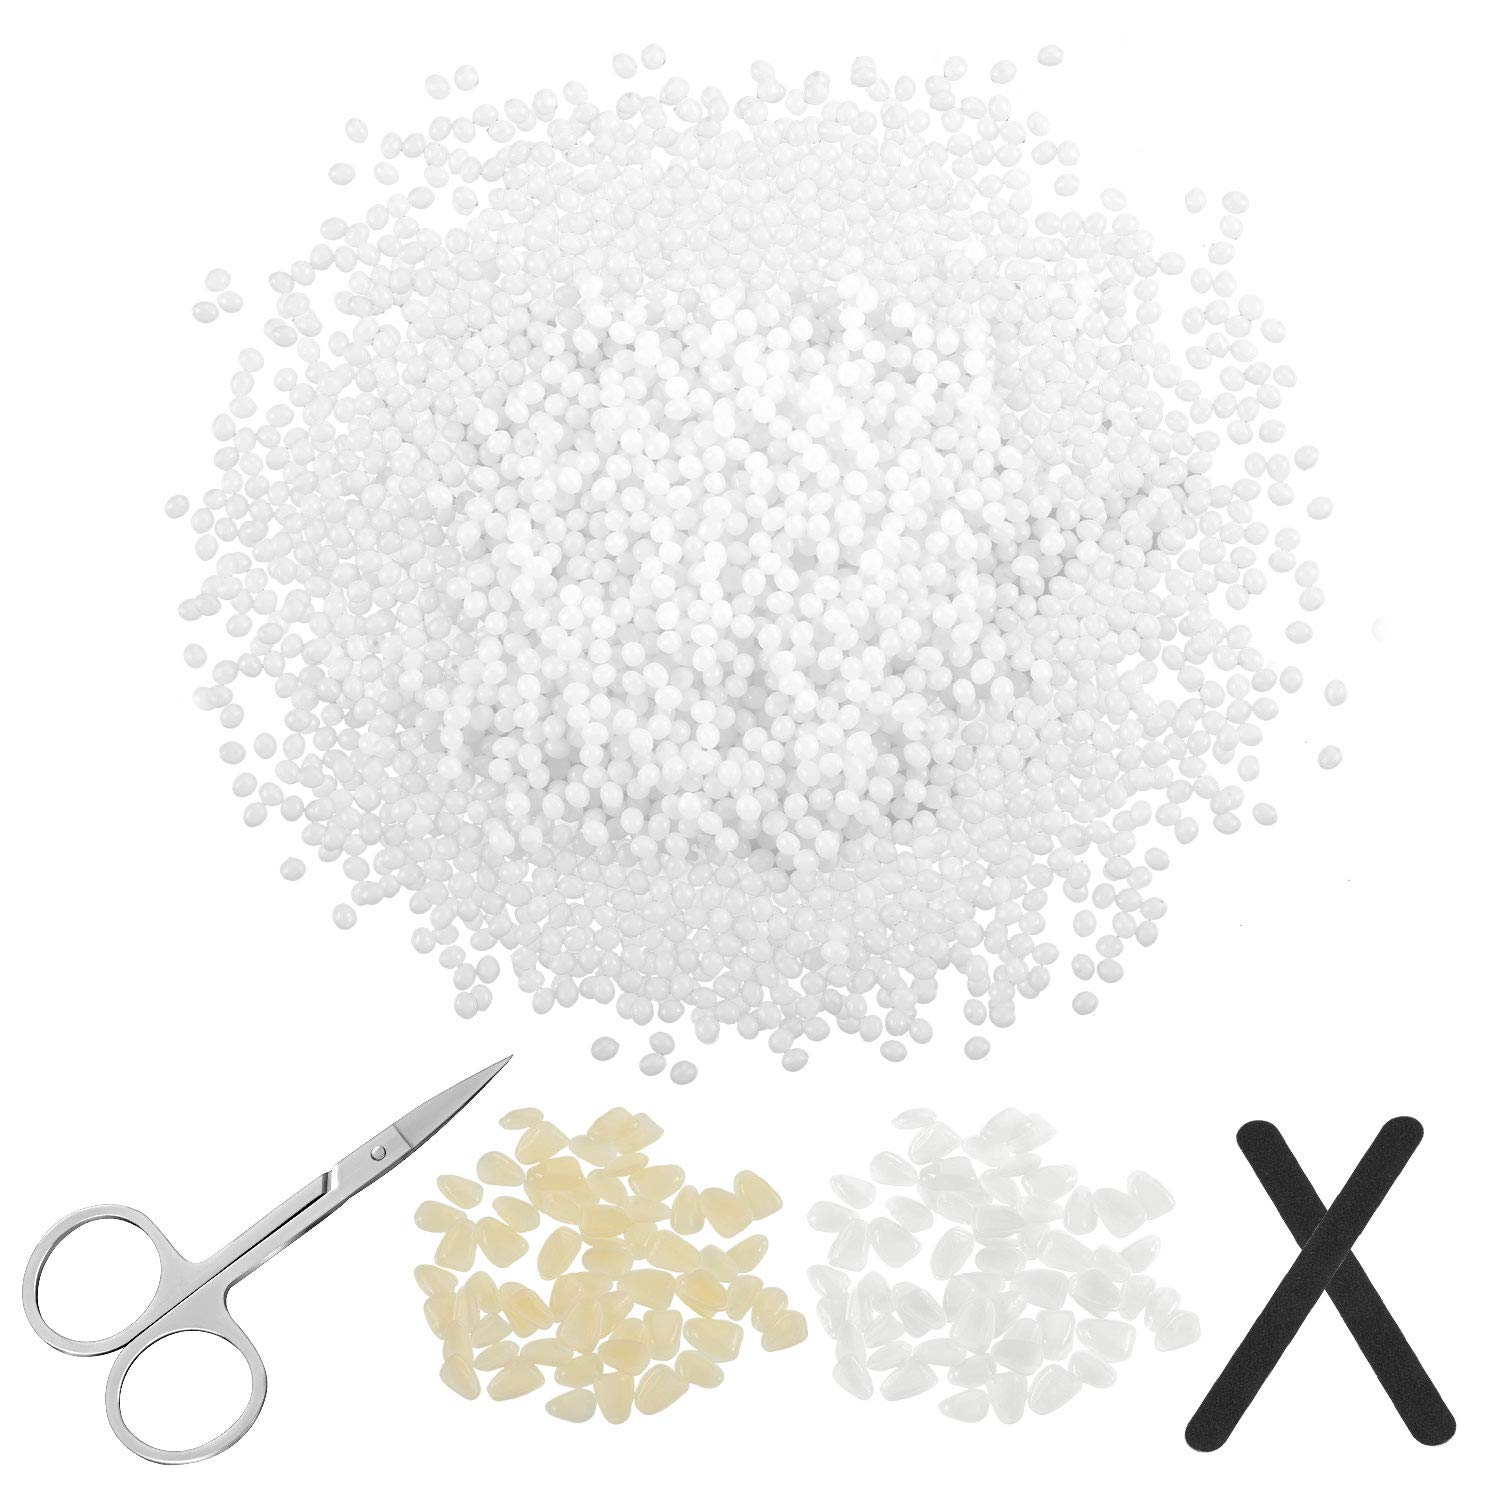 Temporary Tooth Repair Kit 3.53oz Beads Filling Popular Thermal Quantity limited